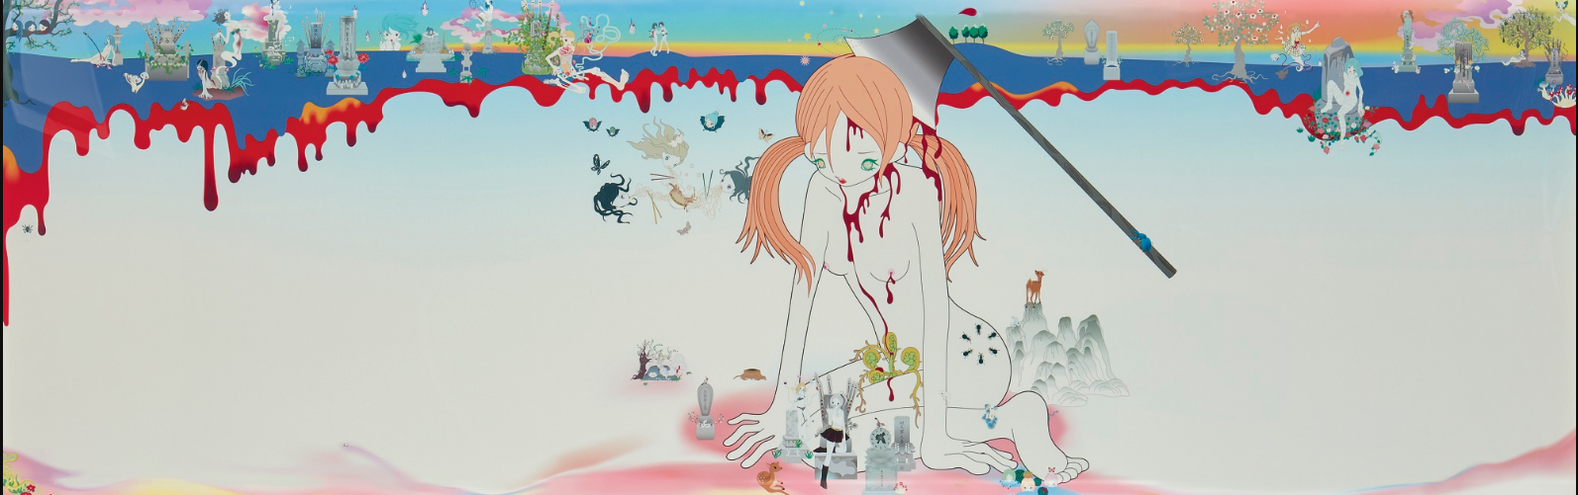 Chiho Aoshima-The Birth Of The Giant Zombie-2001